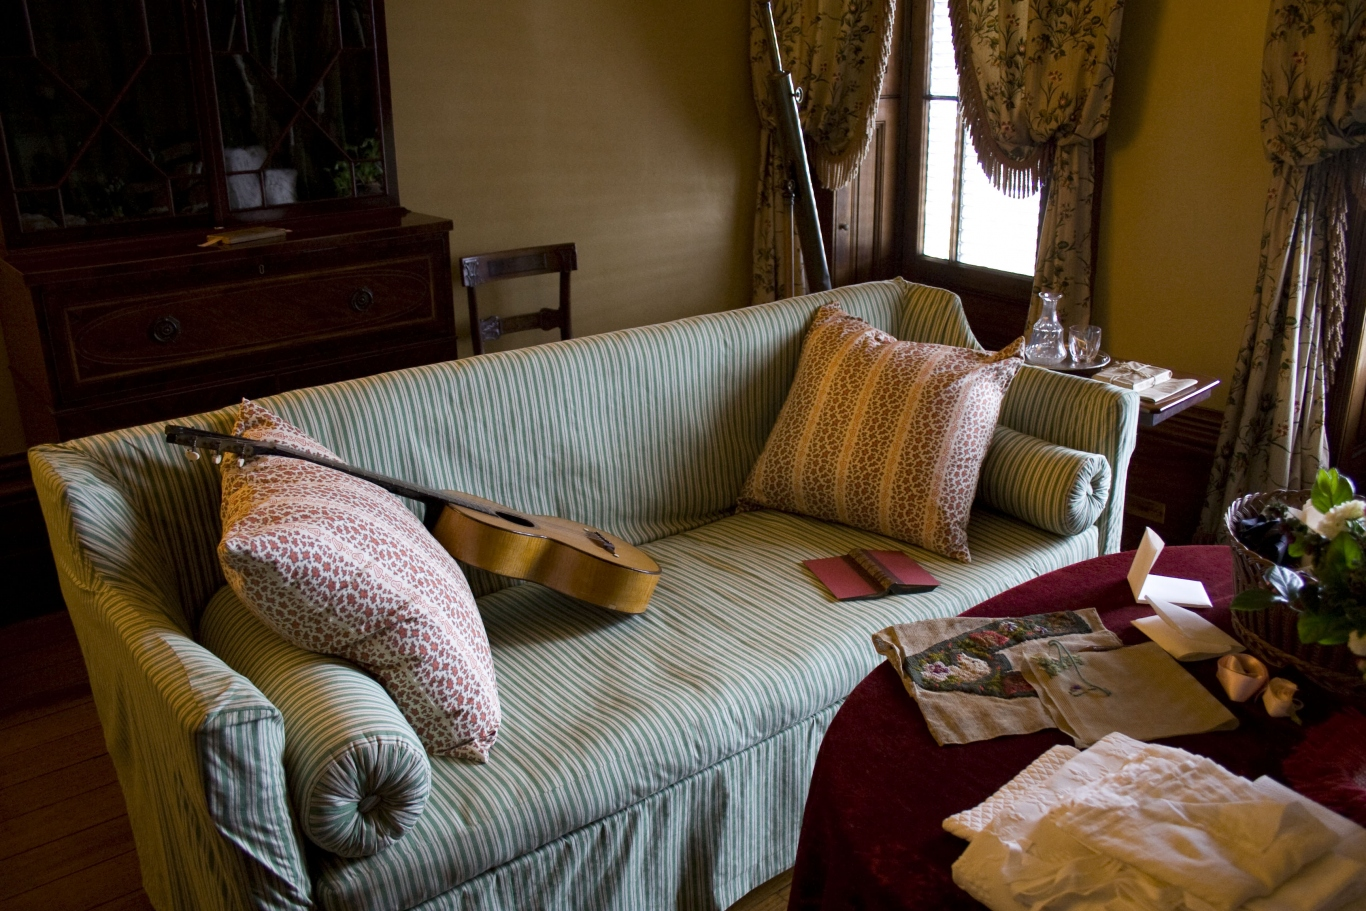 Richly furnished room featuring a striped green sofa with pillows, bolsters, a book and a guitar on it, surrounding by furniture displaying scattered ornaments, pieces of fabric, books and letters underway. In the background are french doors and curtains.